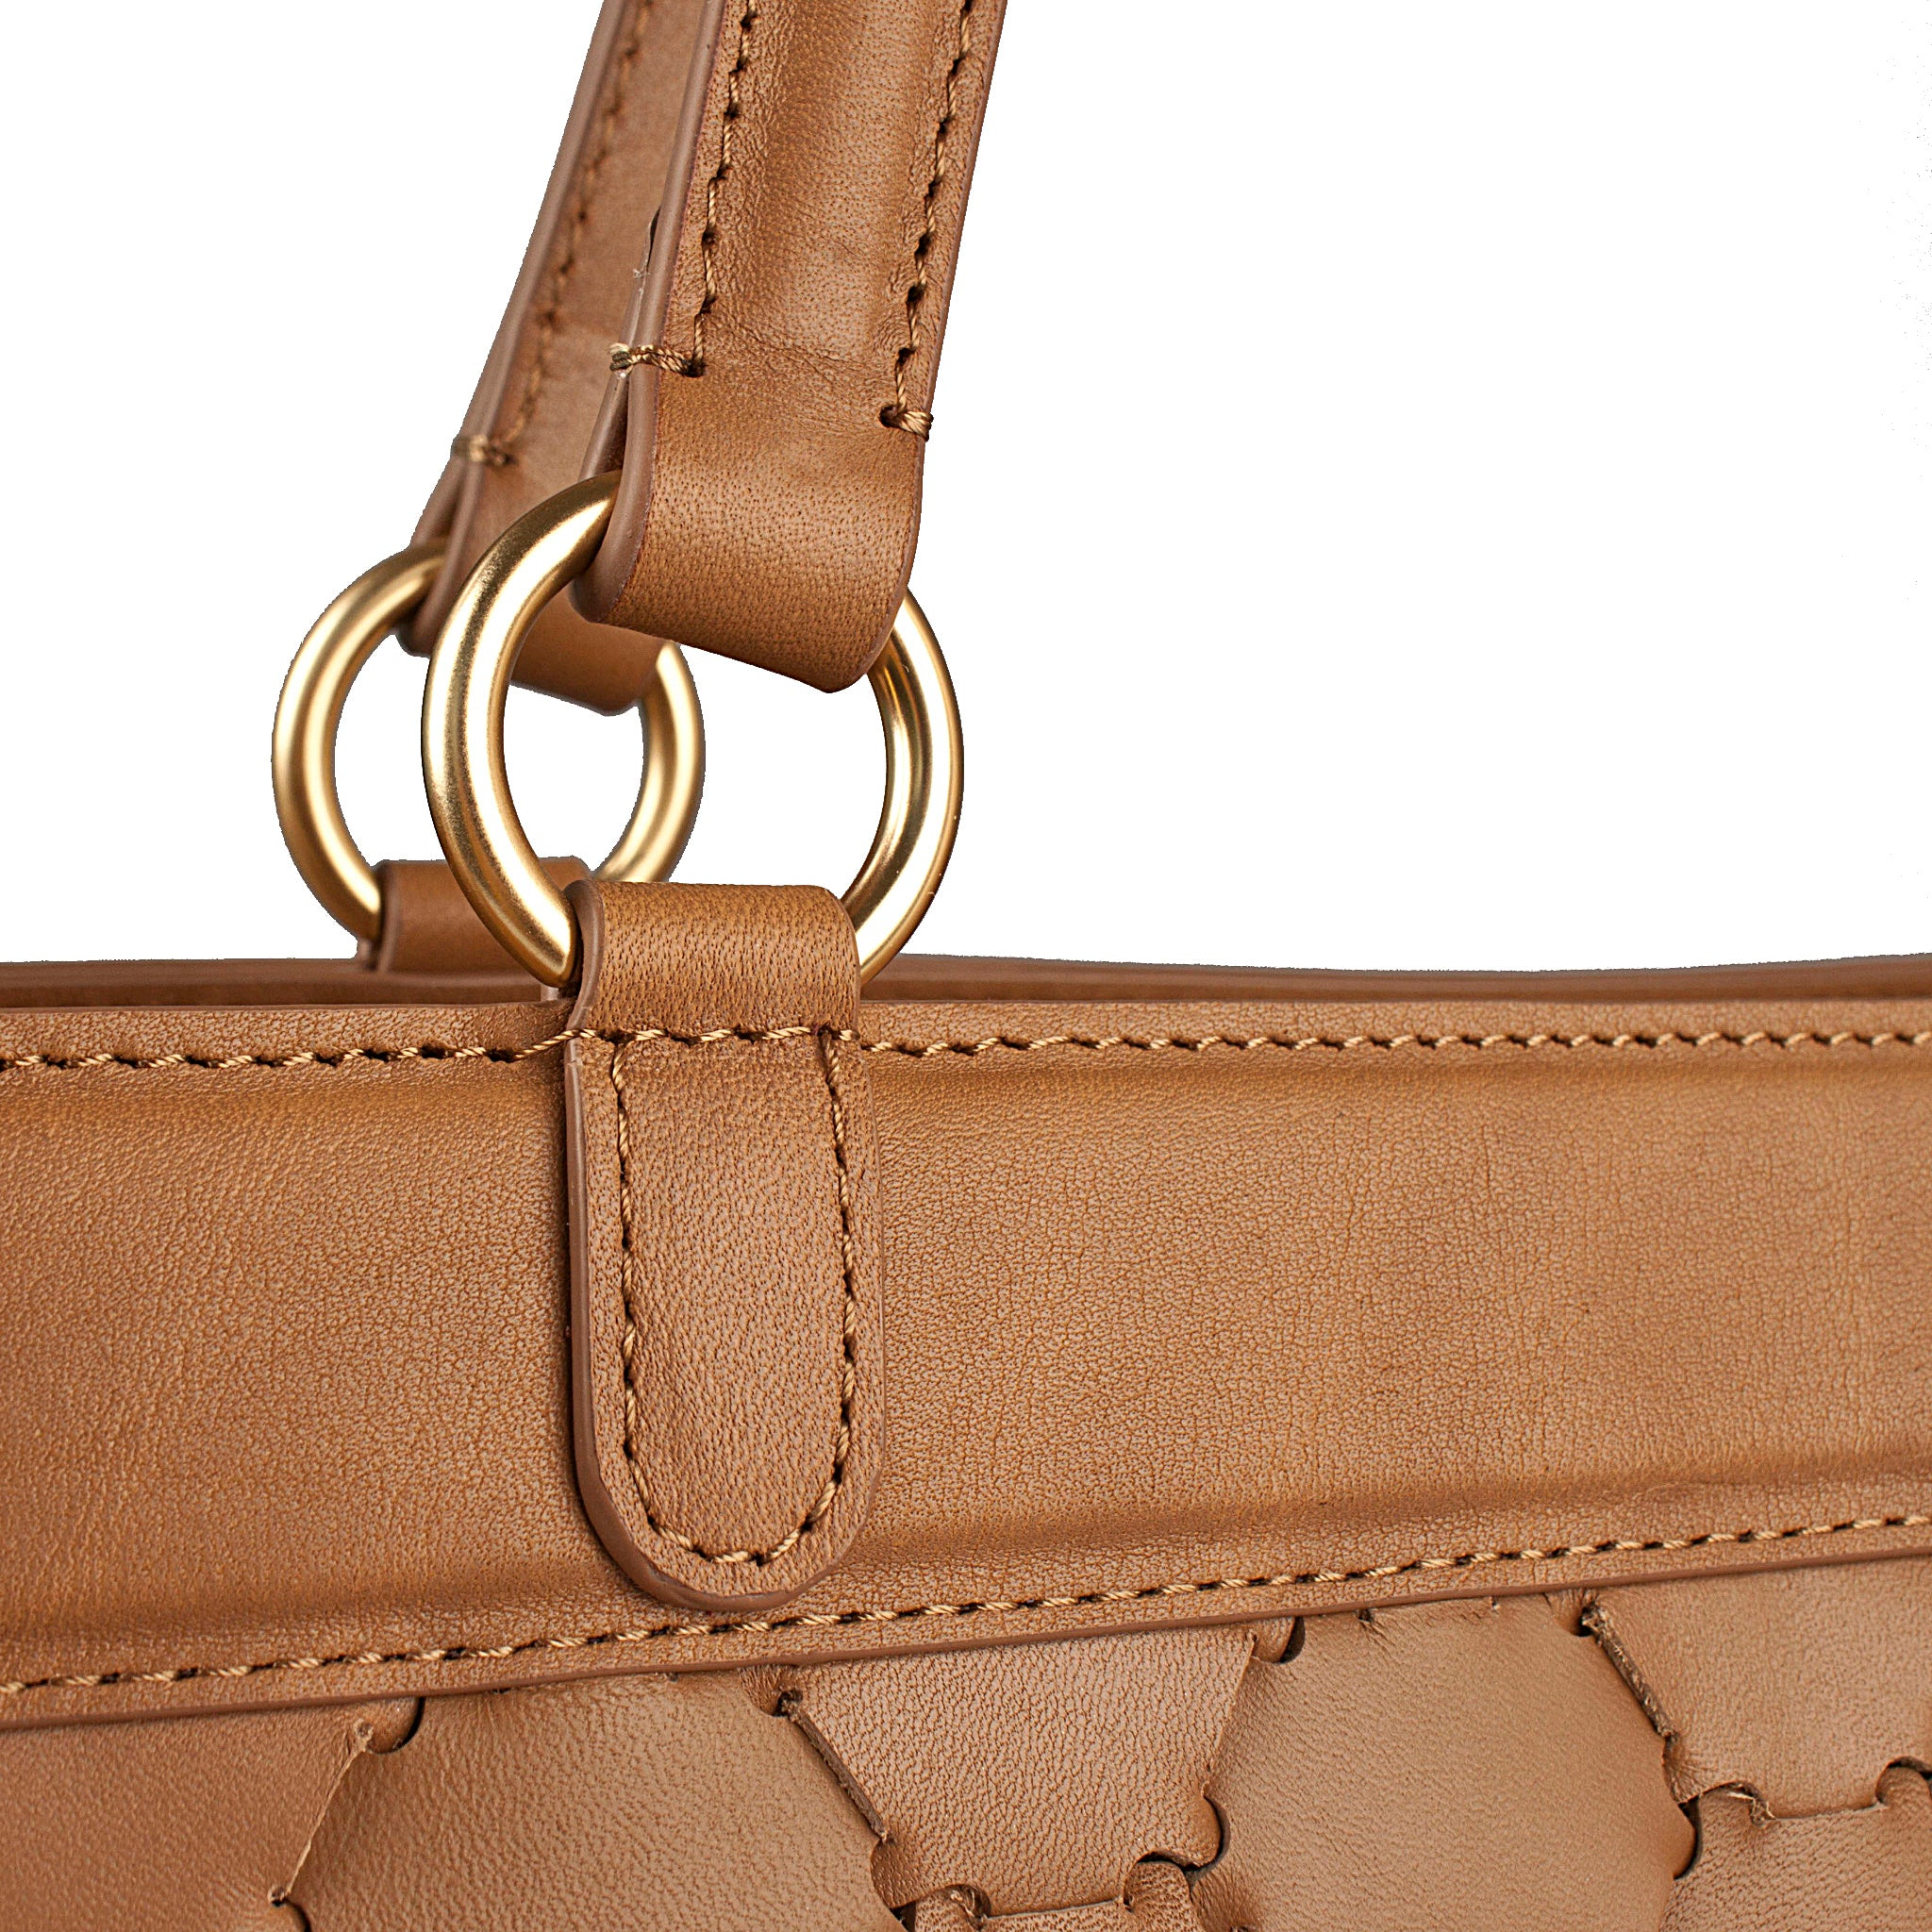 strap detail of luxury tan leather tote bag with handwoven body